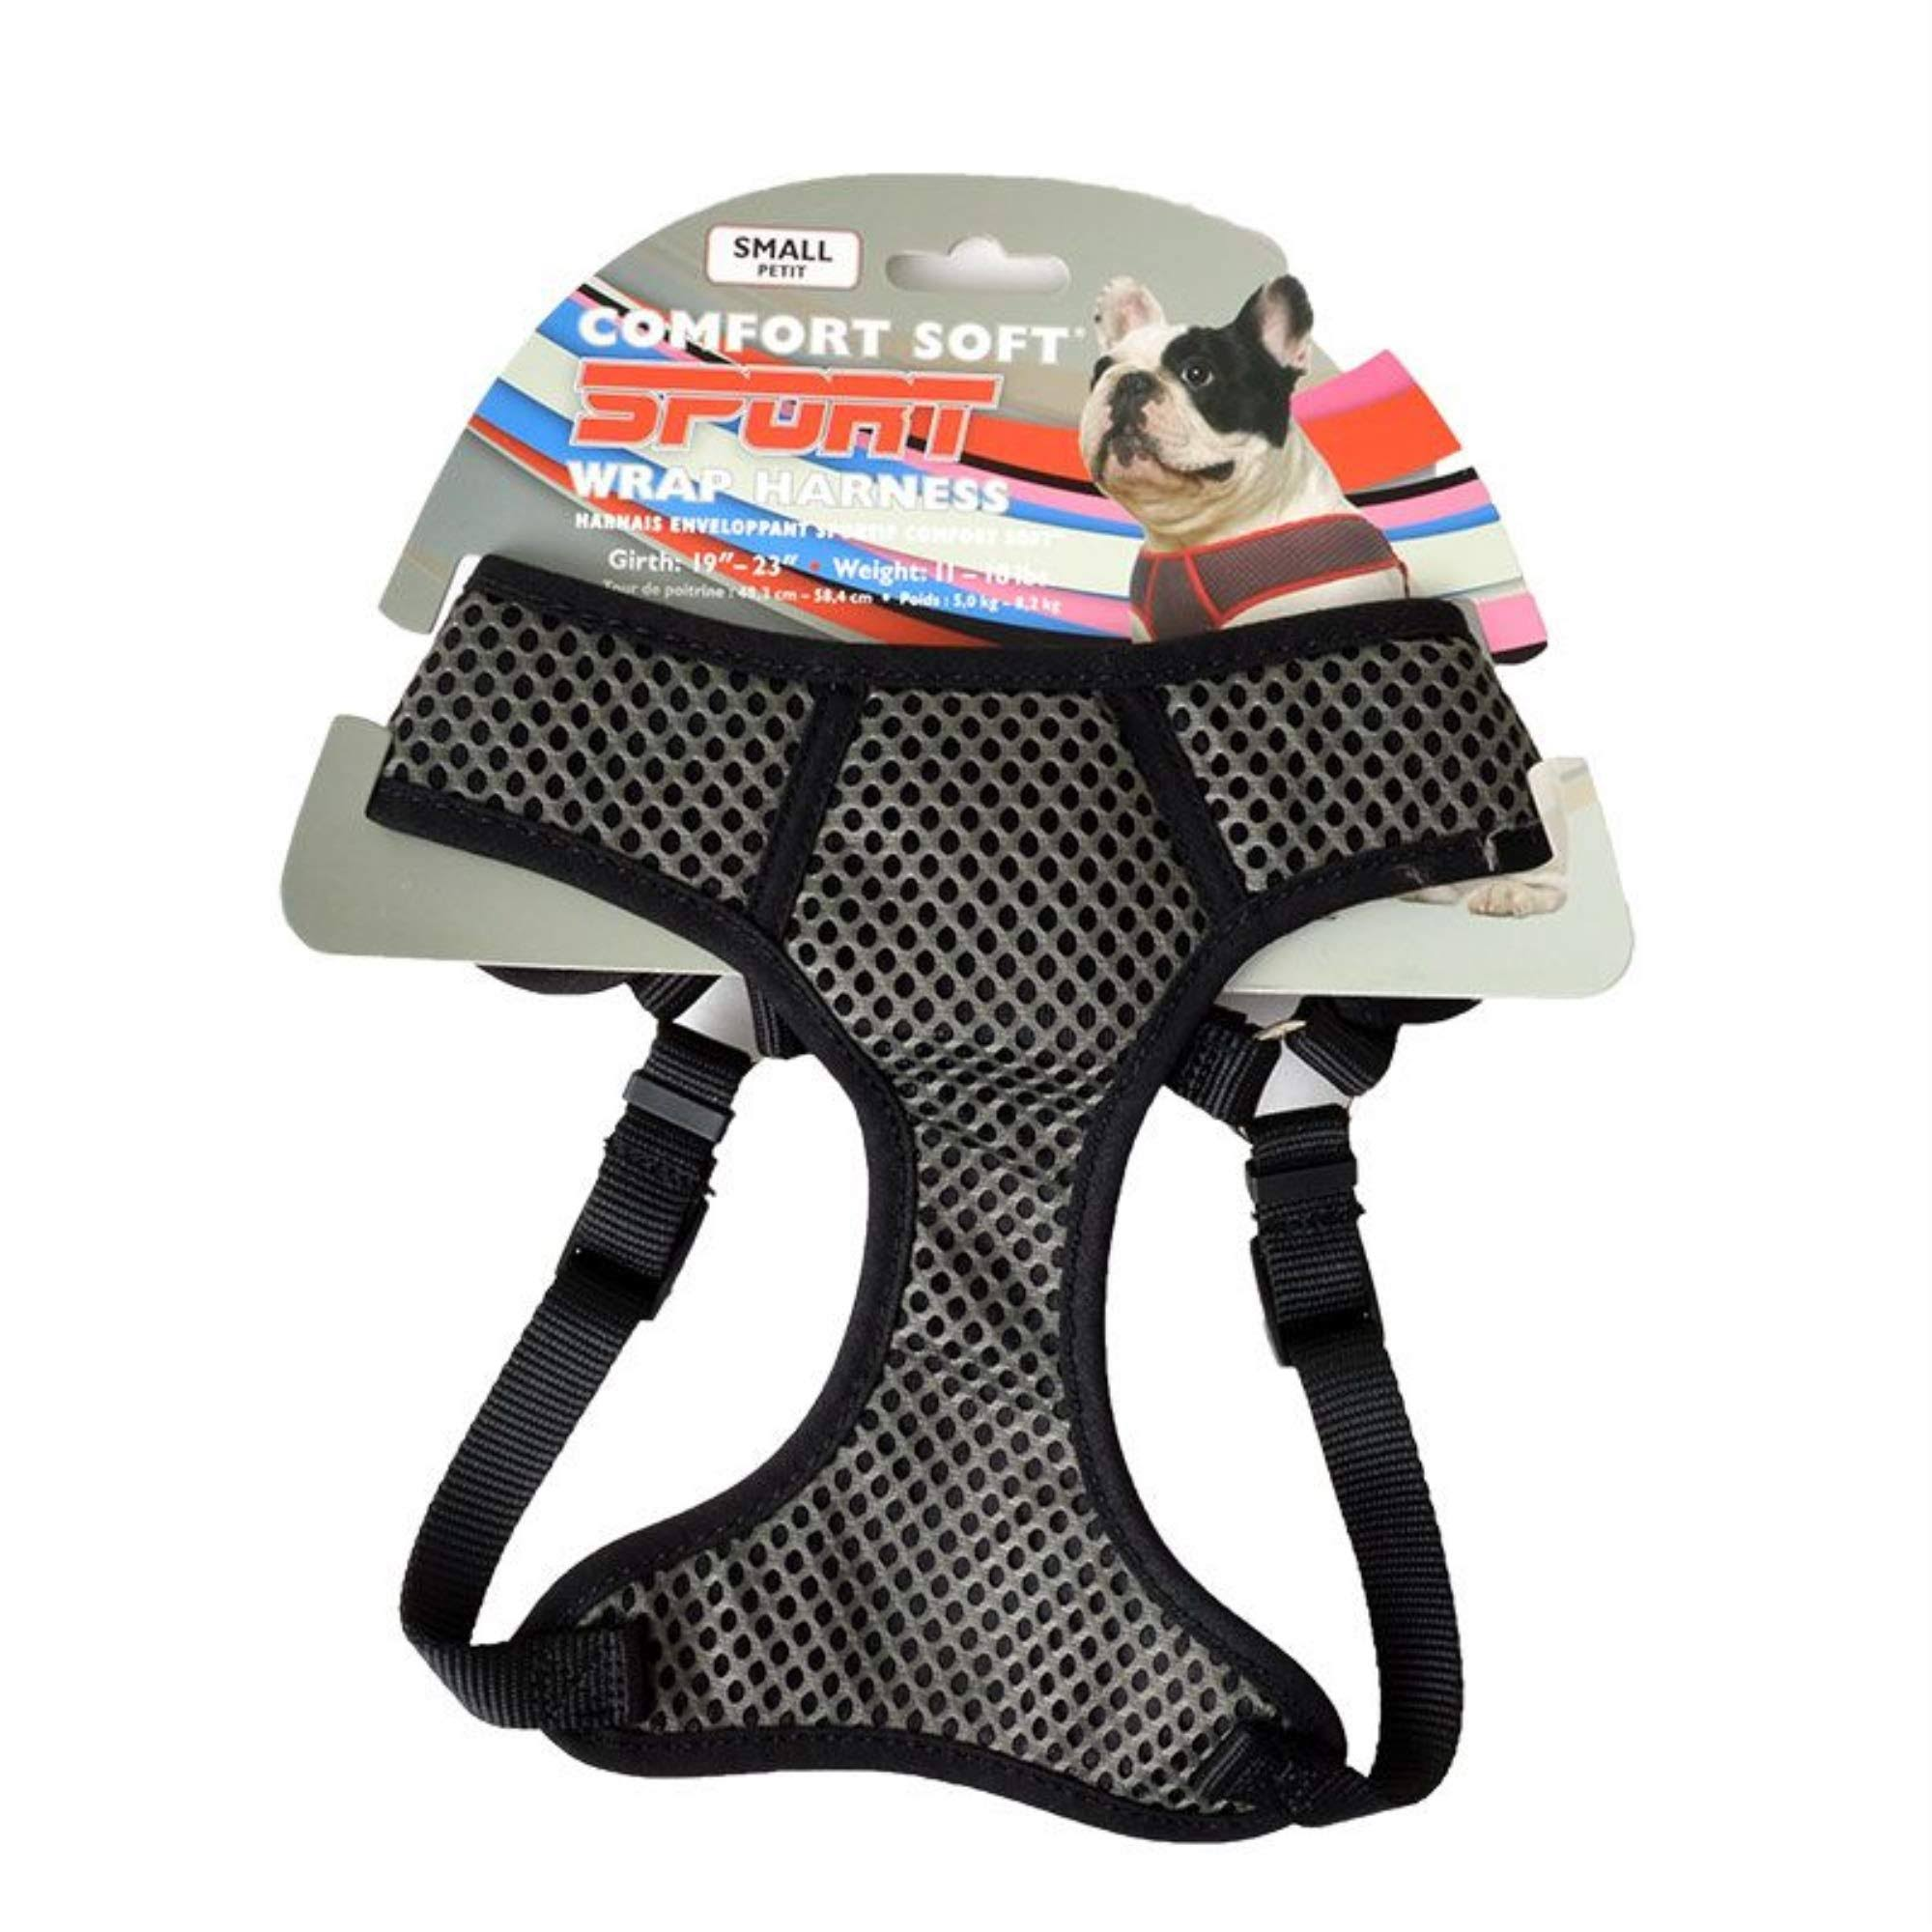 Coastal Pet Sport Wrap Dog Harness - Black, Small